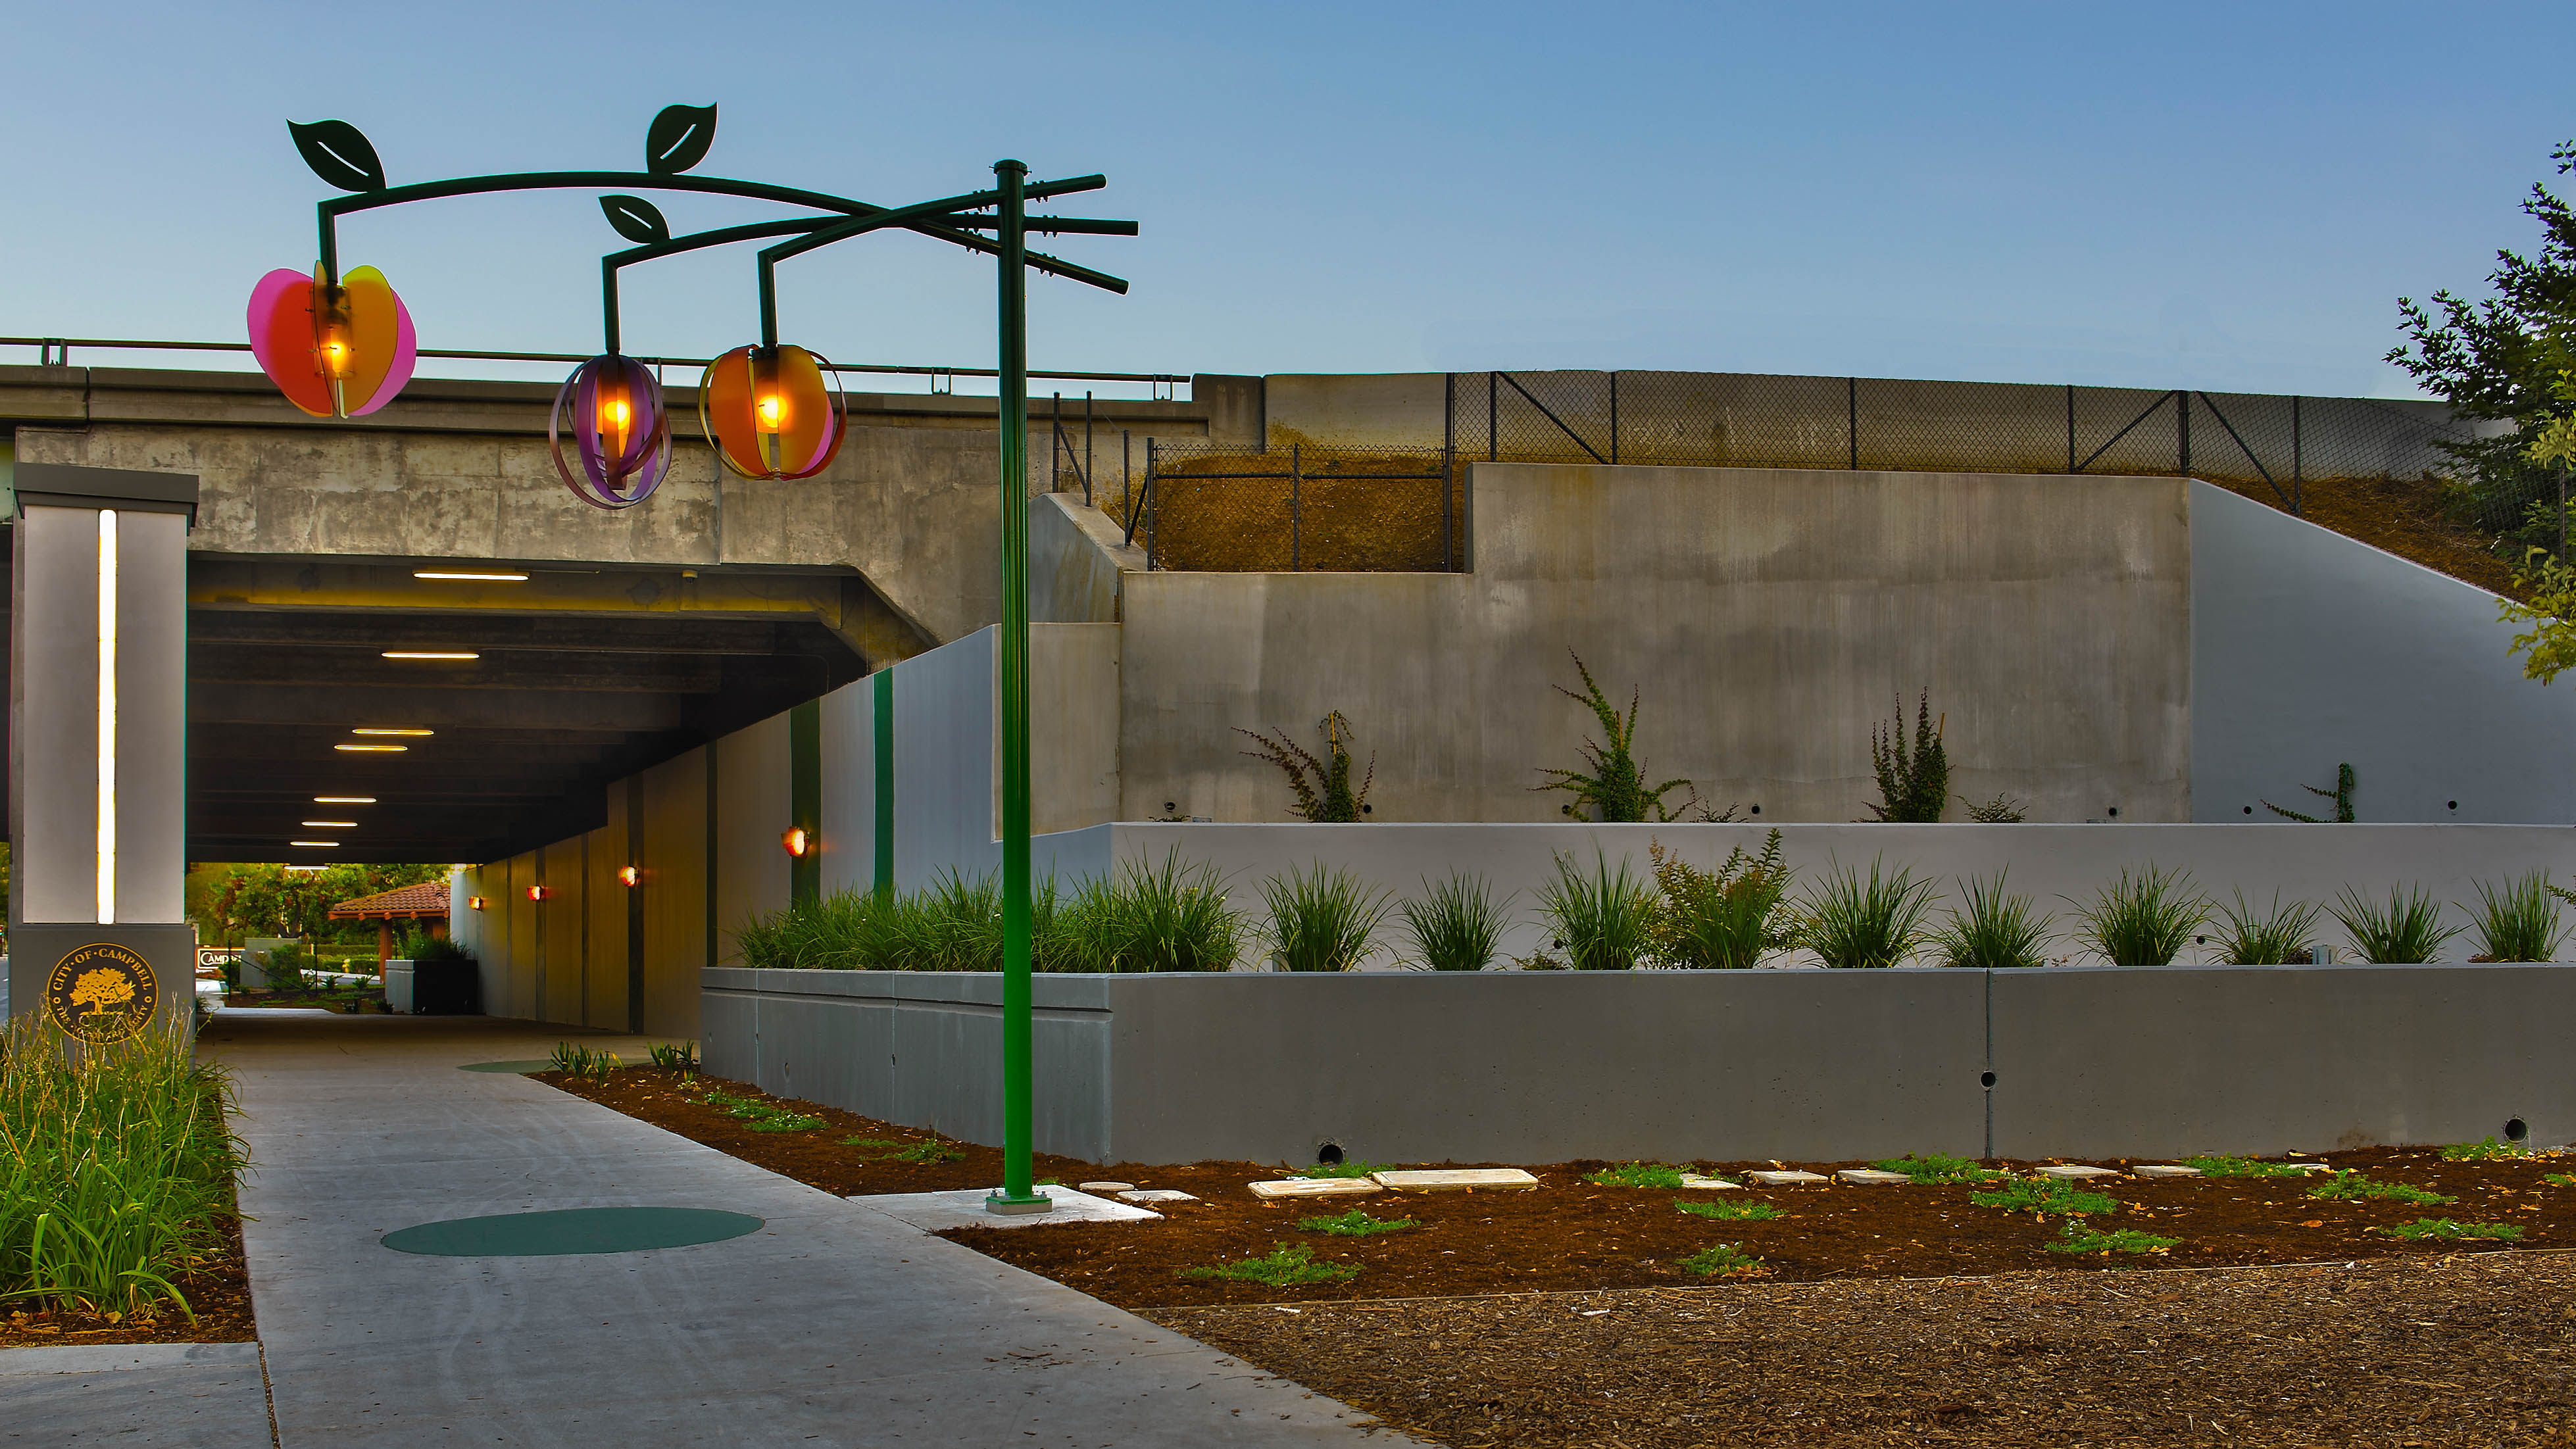 Now this is how you design a freeway underpass